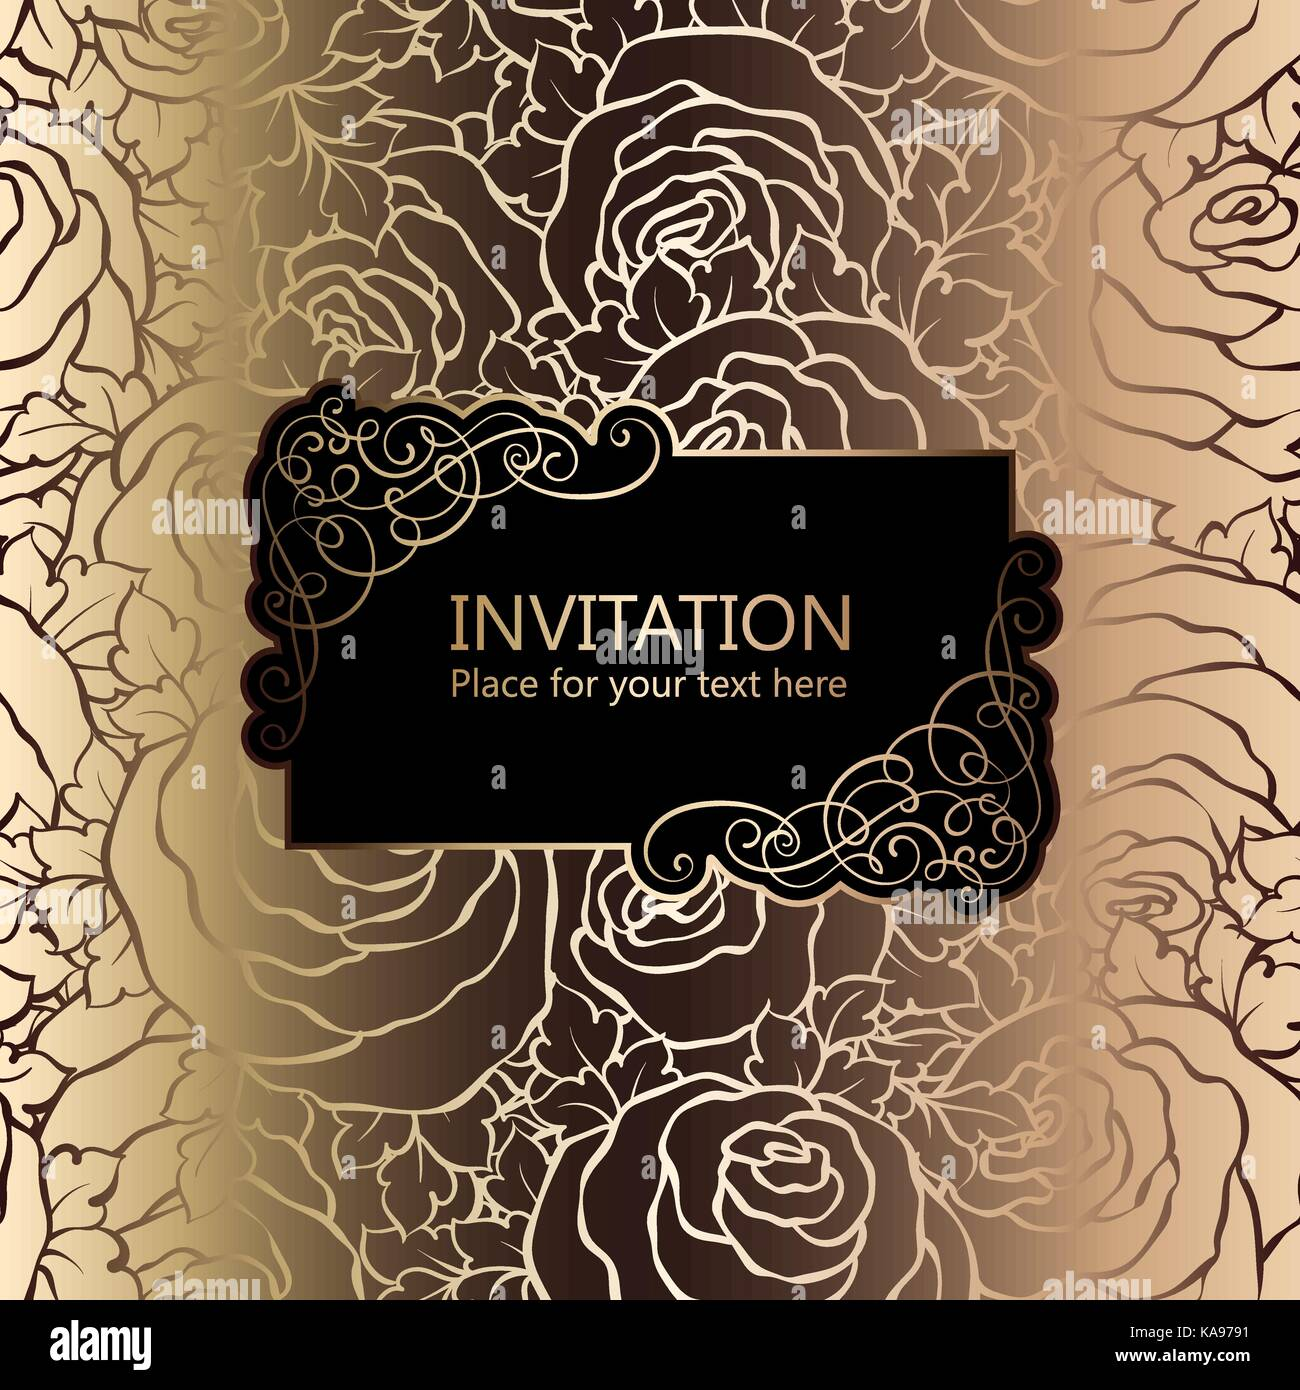 Abstract Background With Roses Luxury Black And Gold Vintage Frame Victorian Banner Damask